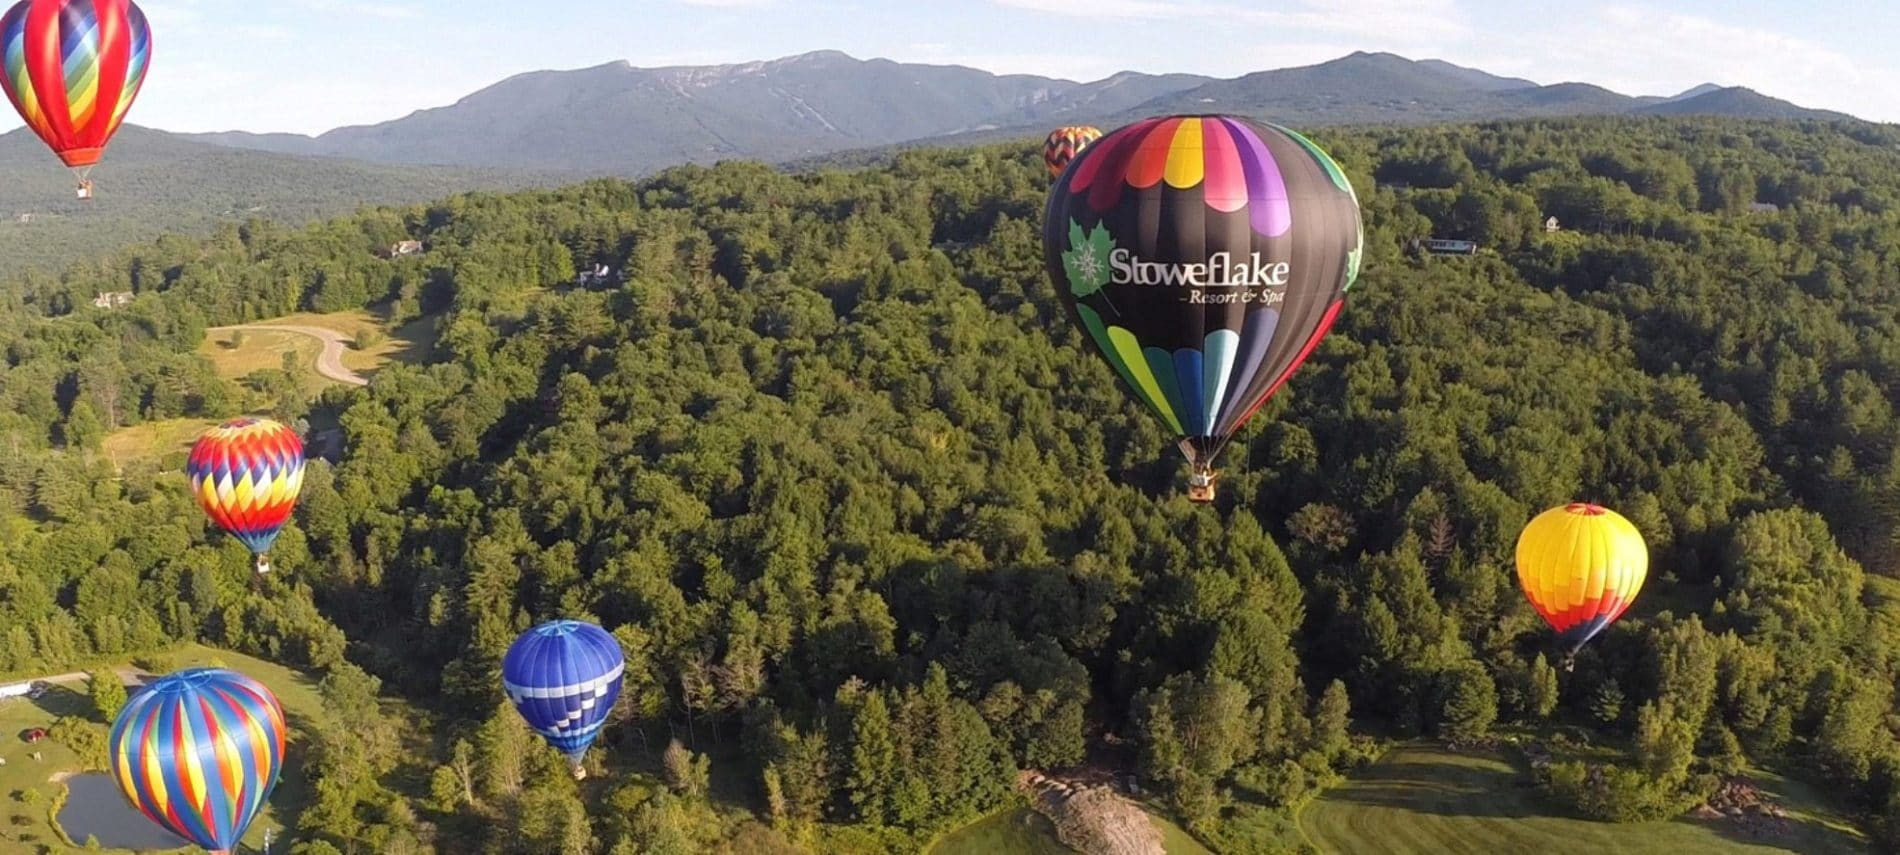 several colorful balloons in the air at the Stoweflake Hot Air Balloon Festival Stowe Vermont